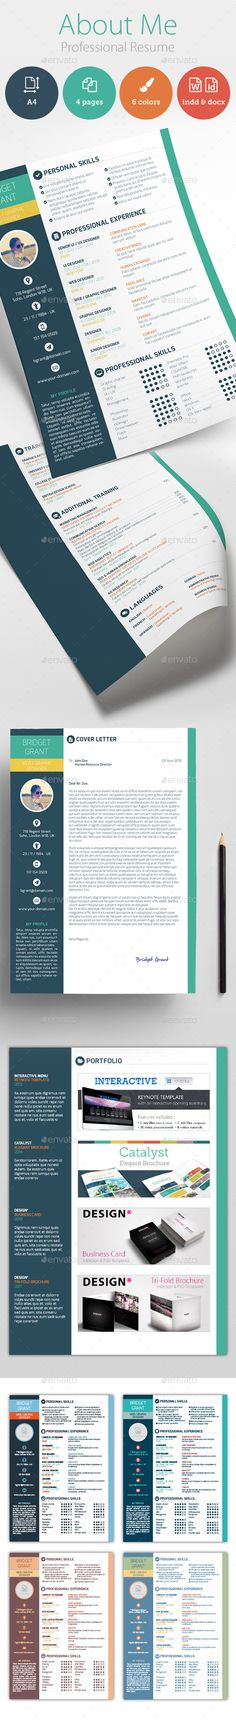 About Me - Professional #Resume - Resumes #Stationery Download here: https://graphicriver.net/item/about-me-professional-resume/11331296?ref=alena994